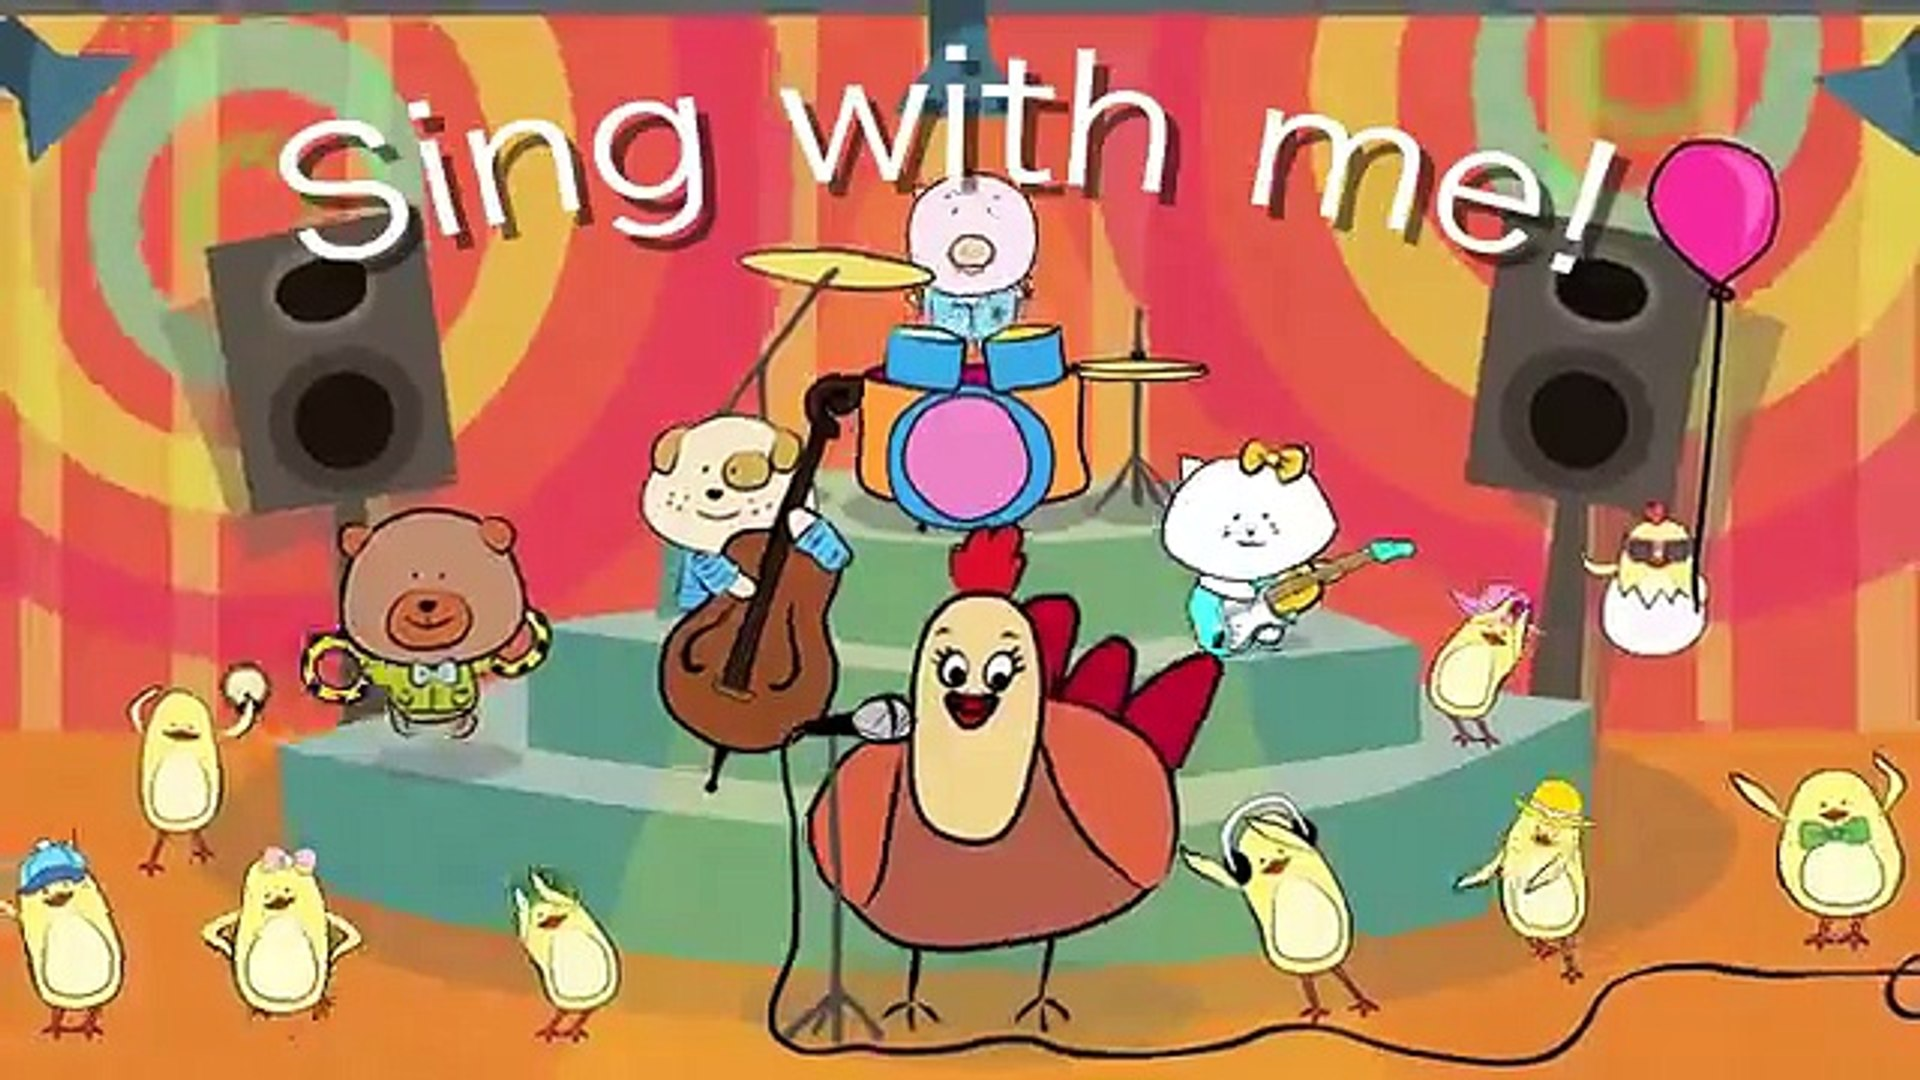 Action Songs for kids - The Singing Walrus